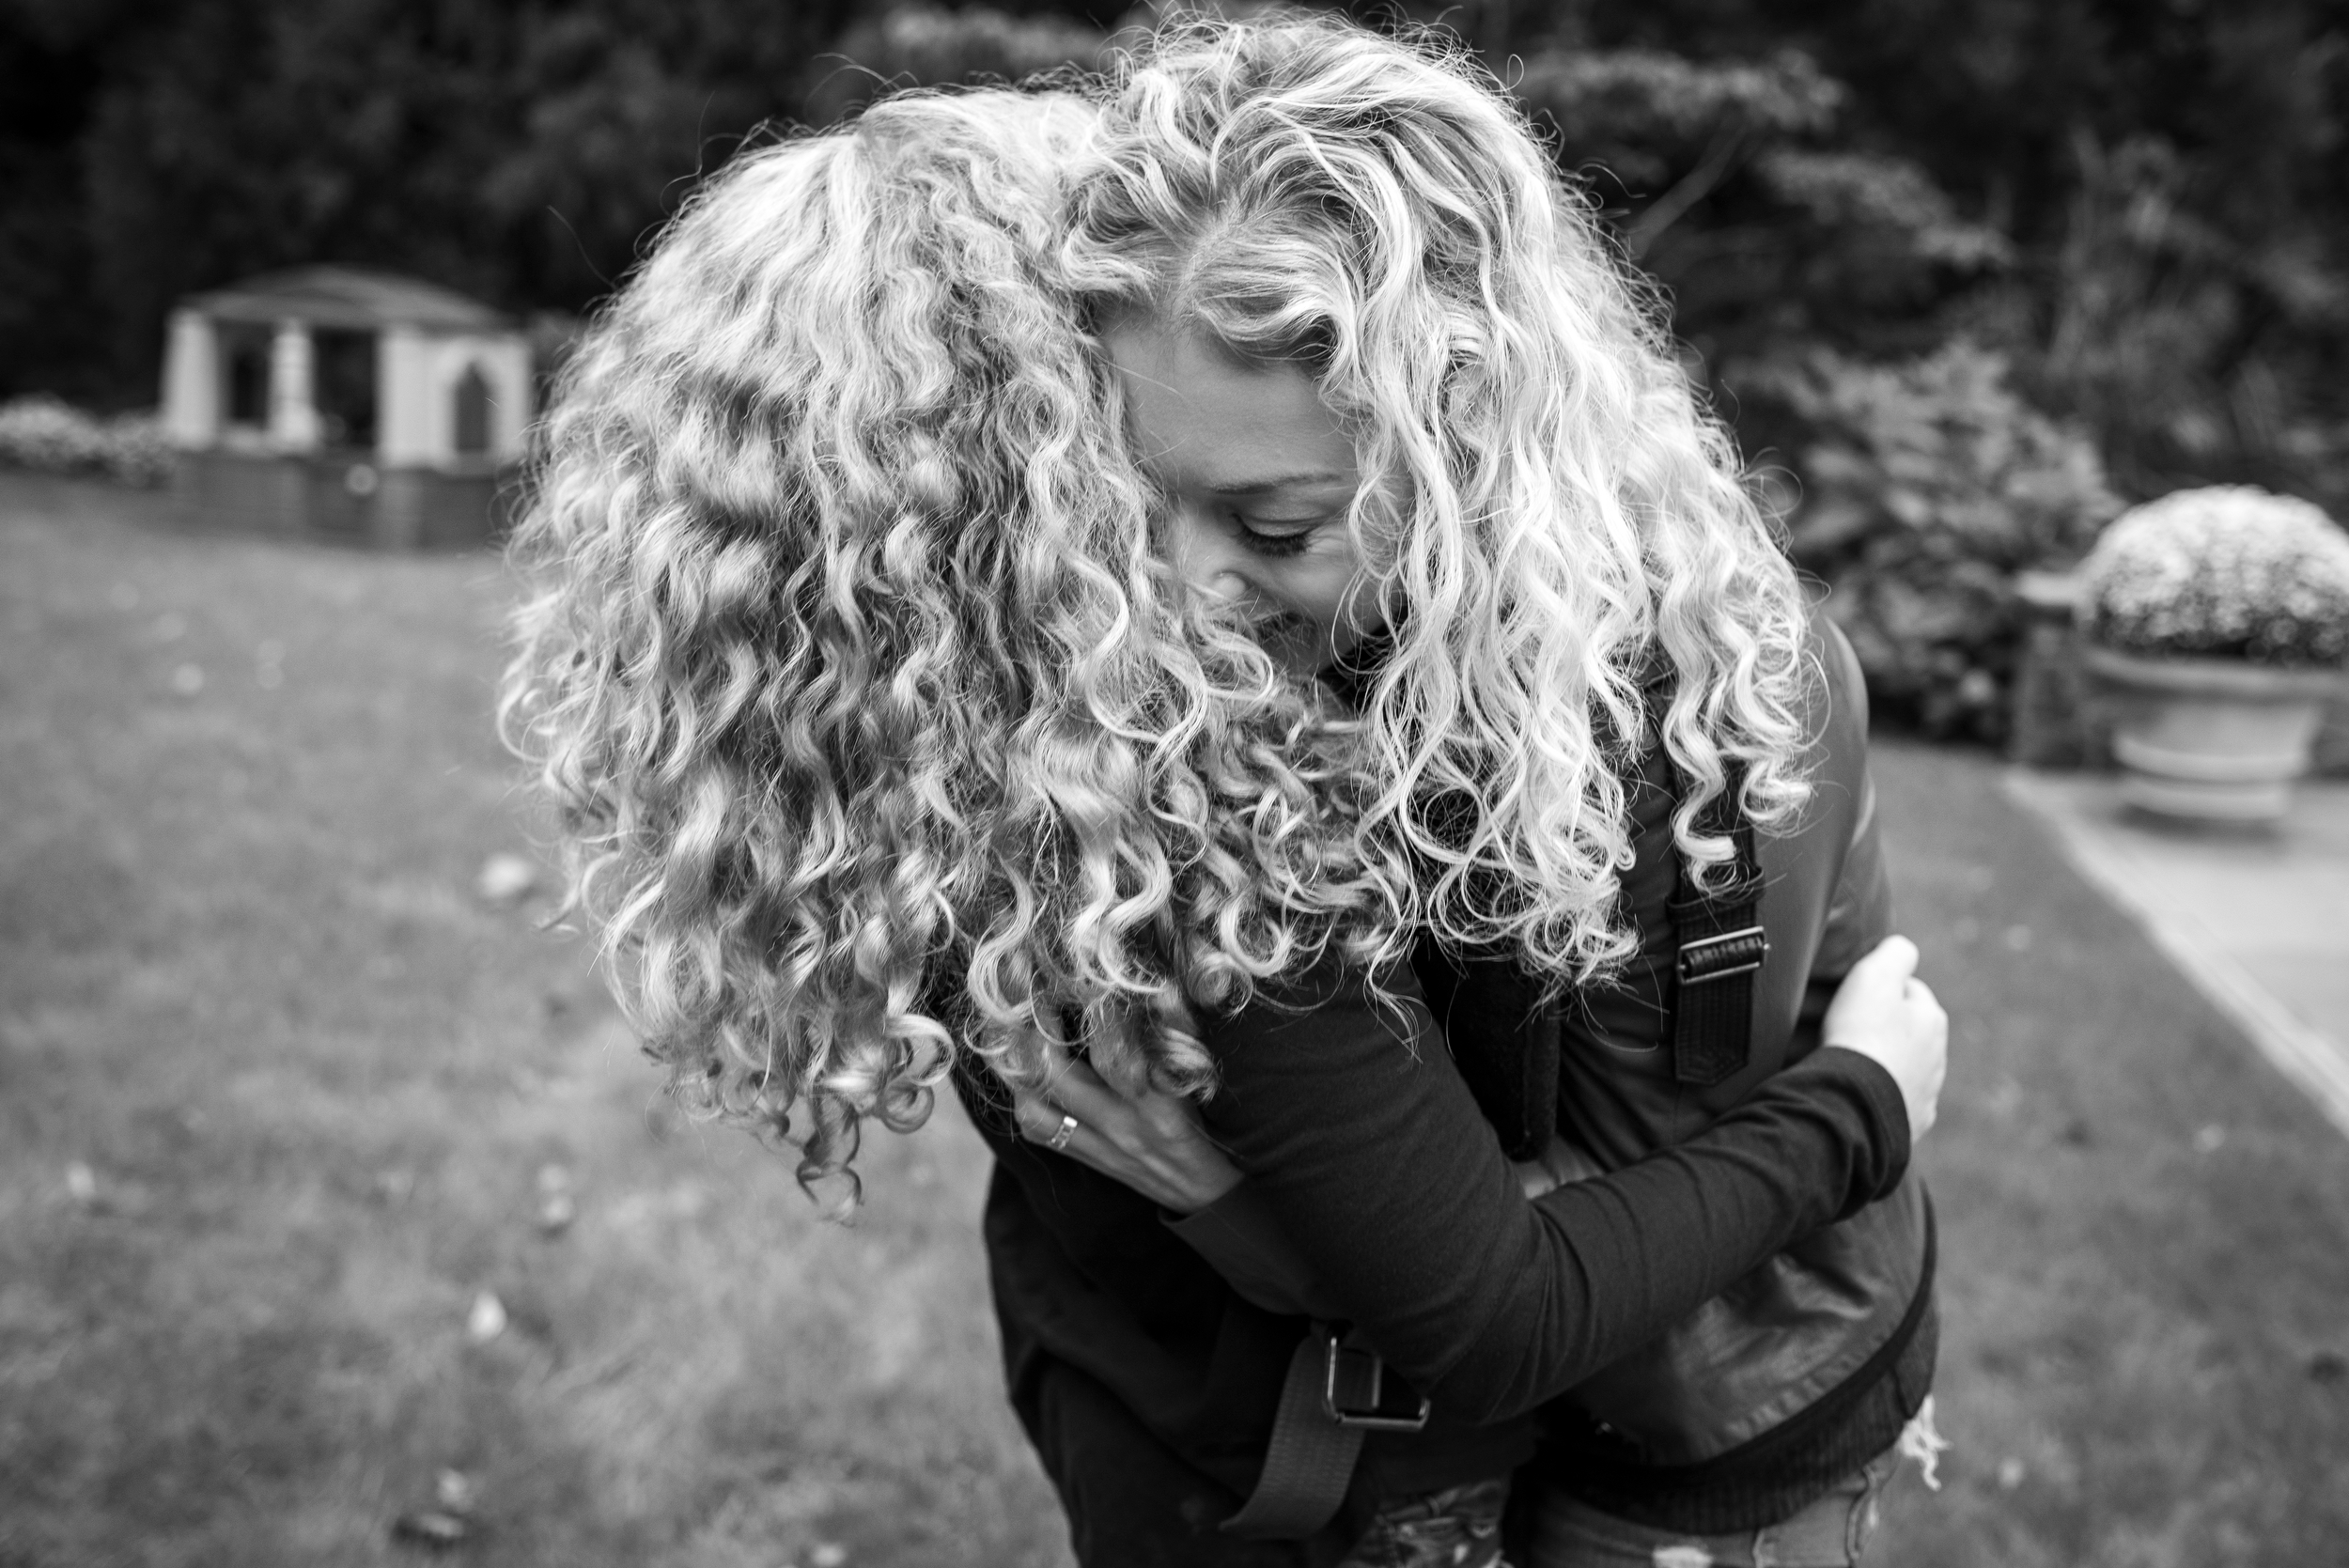 Curls for miles. - I spent a Fall day with this very sweet and loving bunch that consisted of Legos, card games, a mountain of stuffed animals and endless hugs. See their story.